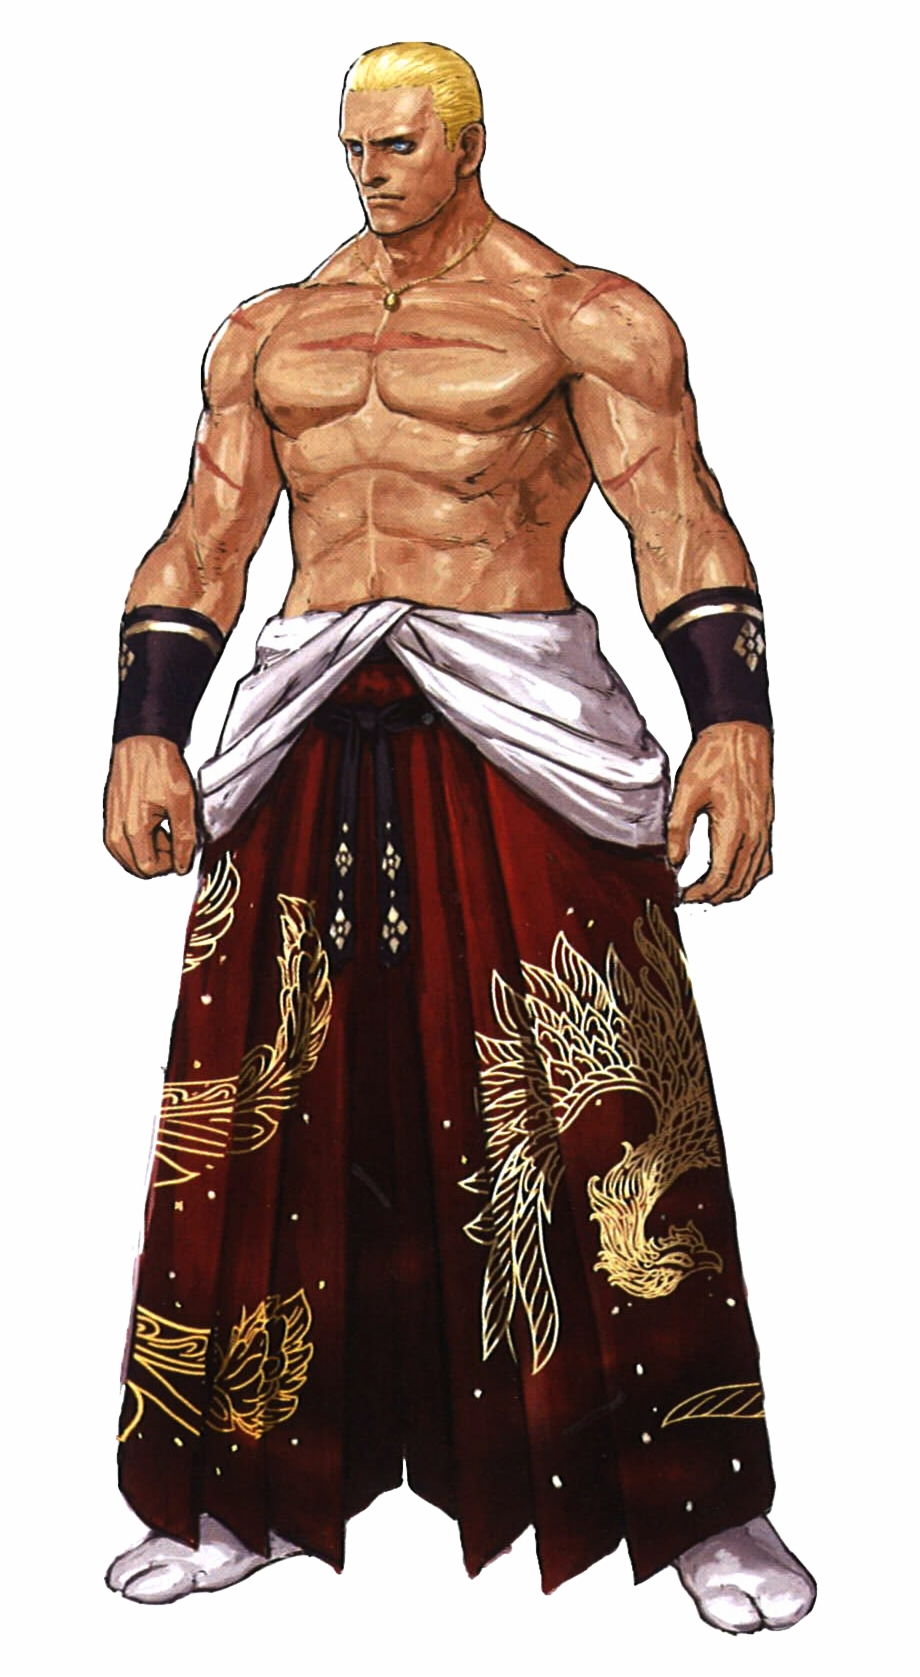 Geese Kofxiv Terry Bogard And Rock Howard Transparent Png Download 3532226 Vippng Poster of rock howard's stage from garou: geese kofxiv terry bogard and